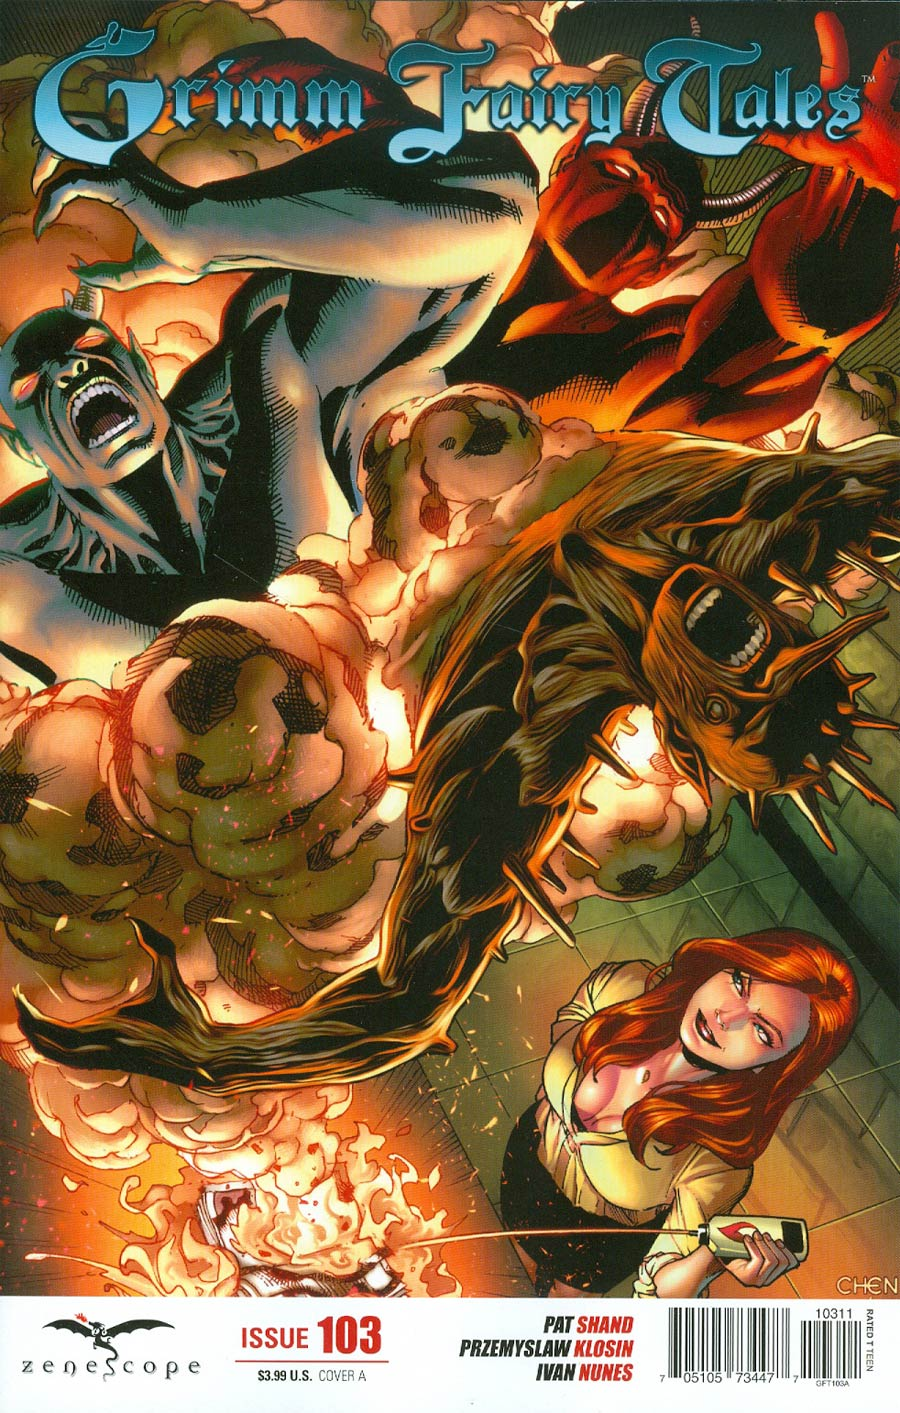 Grimm Fairy Tales #103 Cover A Sean Chen (Age Of Darkness Tie-In)